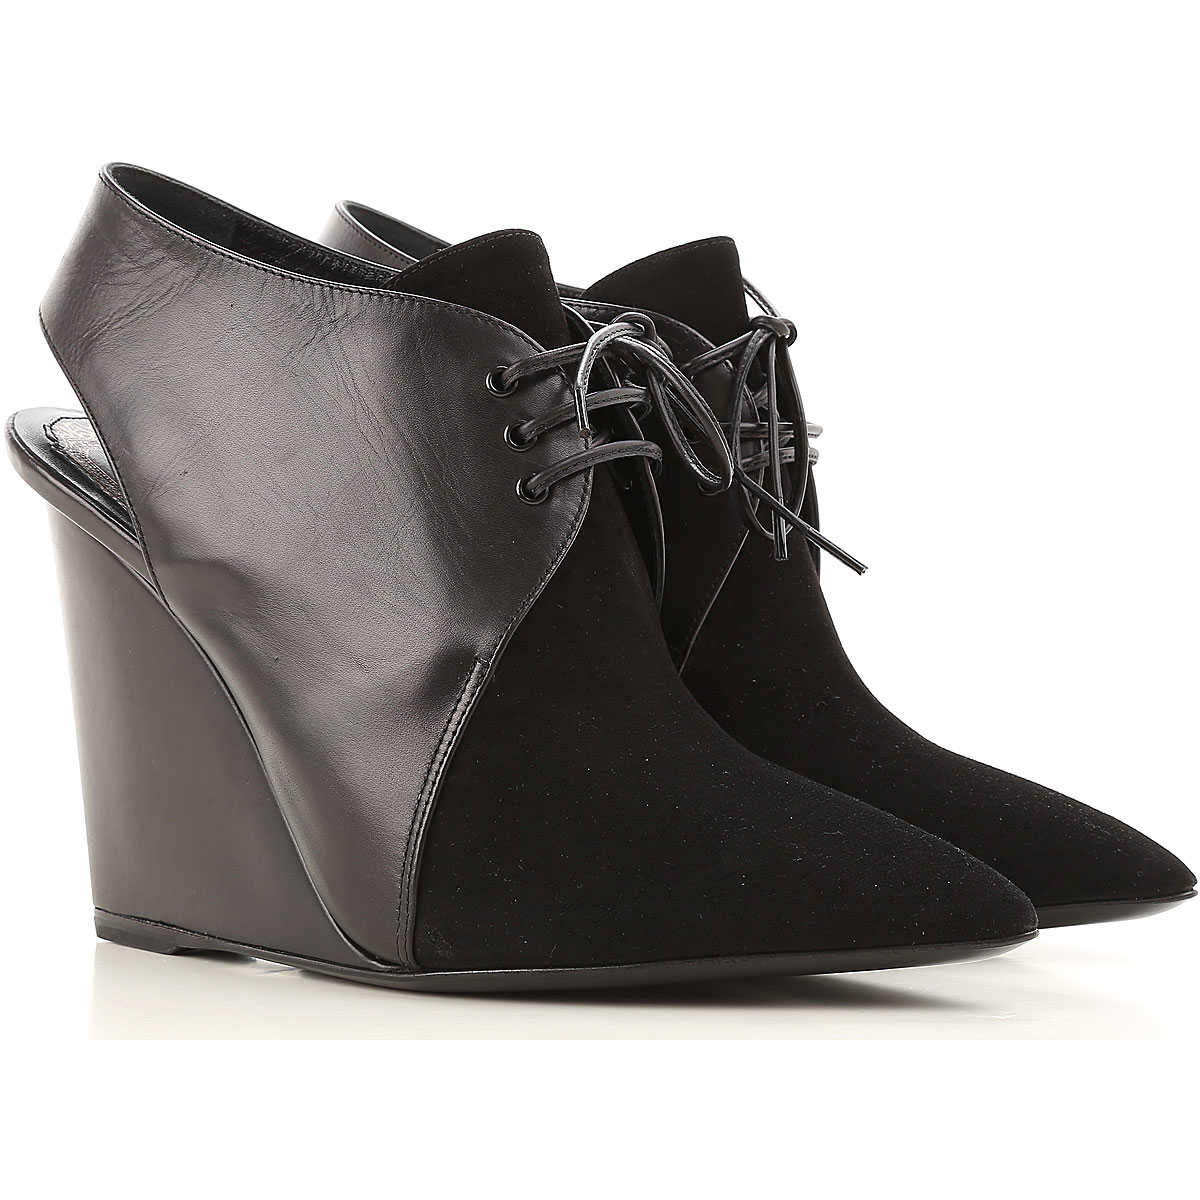 Christian Dior Wedges for Women in Outlet Black USA - GOOFASH